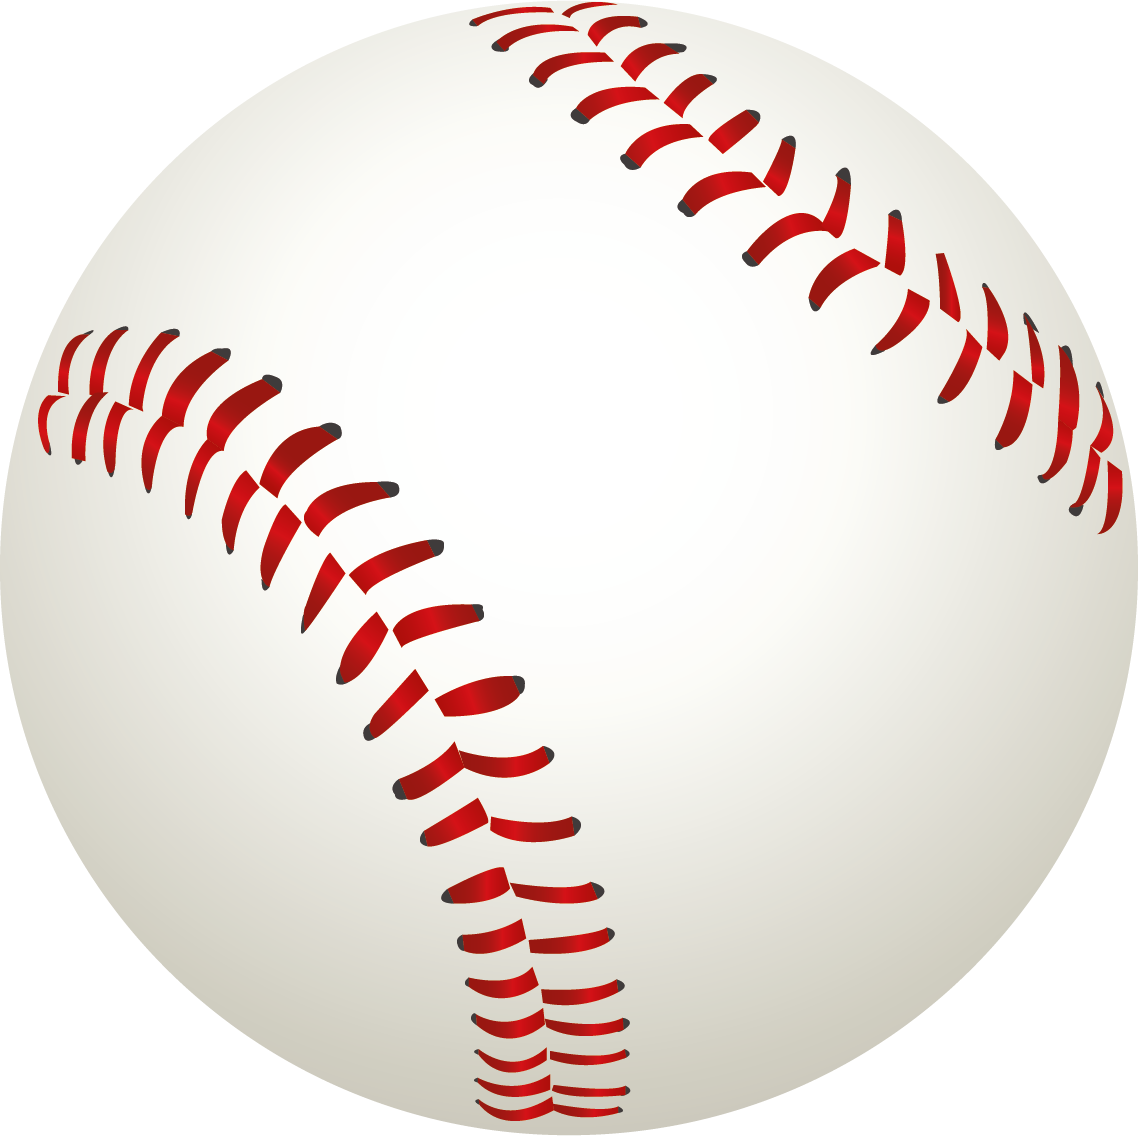 1138x1136 Free Baseball Clipart Free Clip Art Images Image 7 2